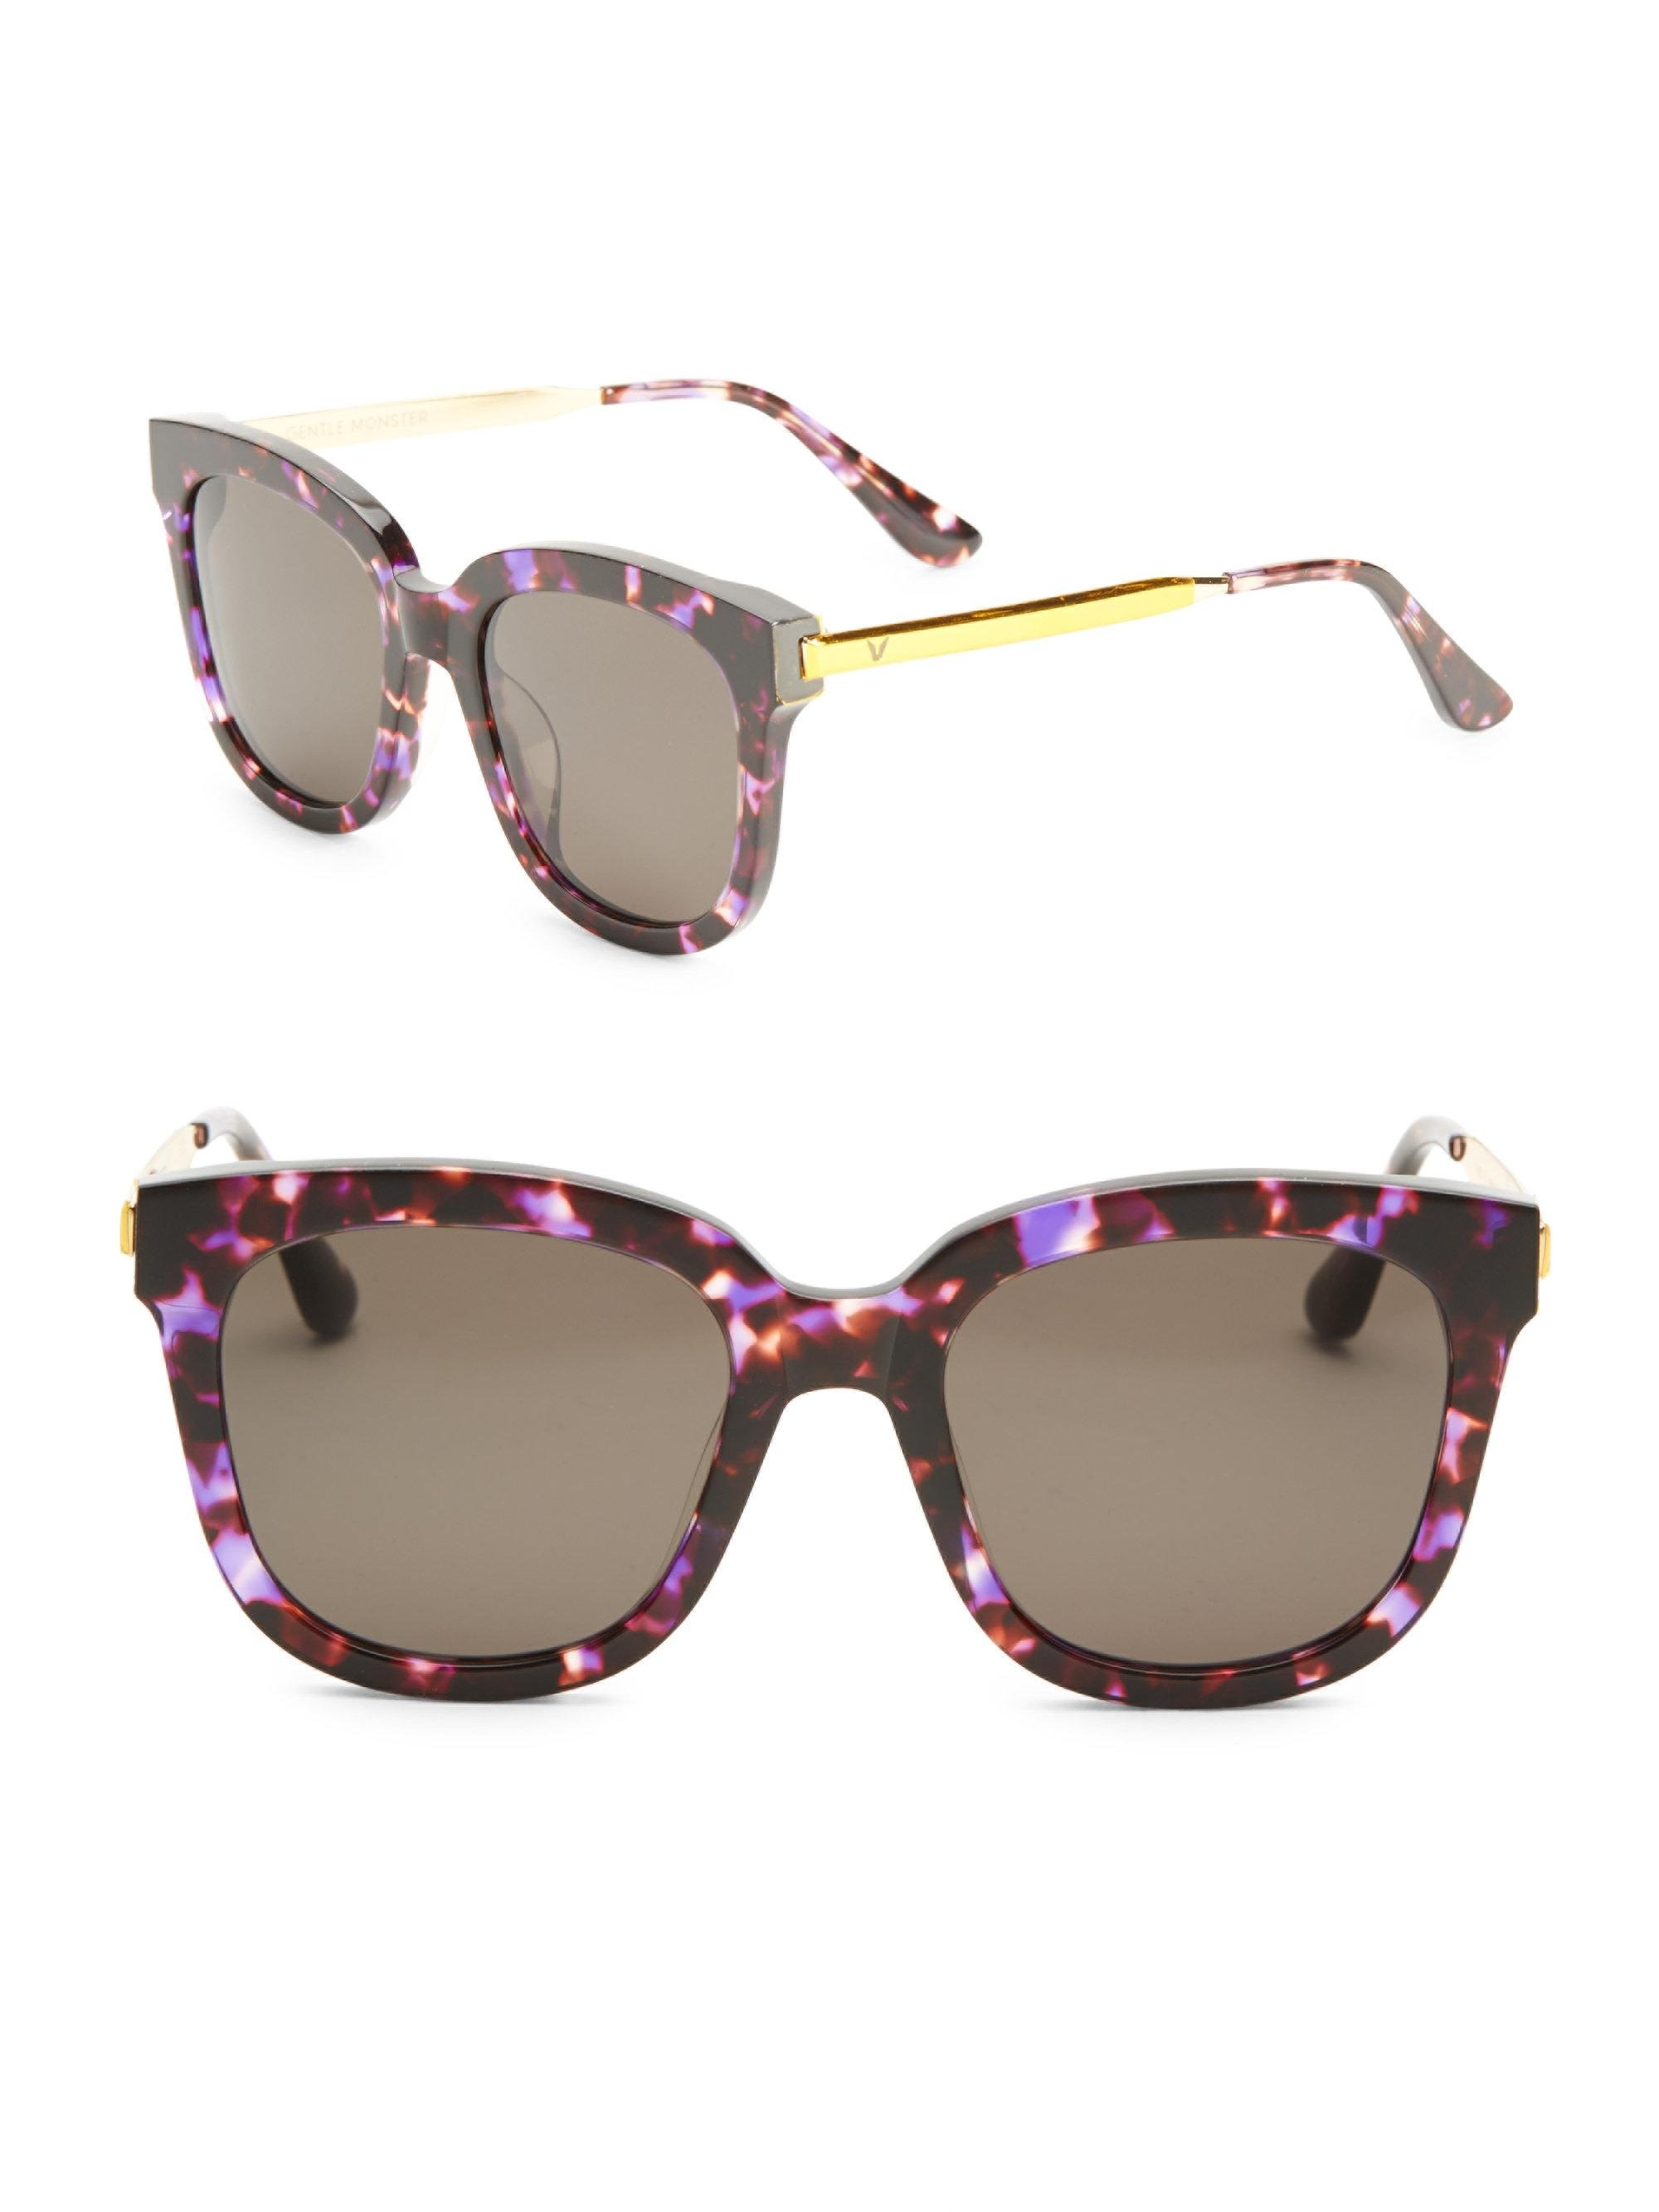 0a8004696c00 Lyst - Gentle Monster Absente 54mm Oversize Sunglasses